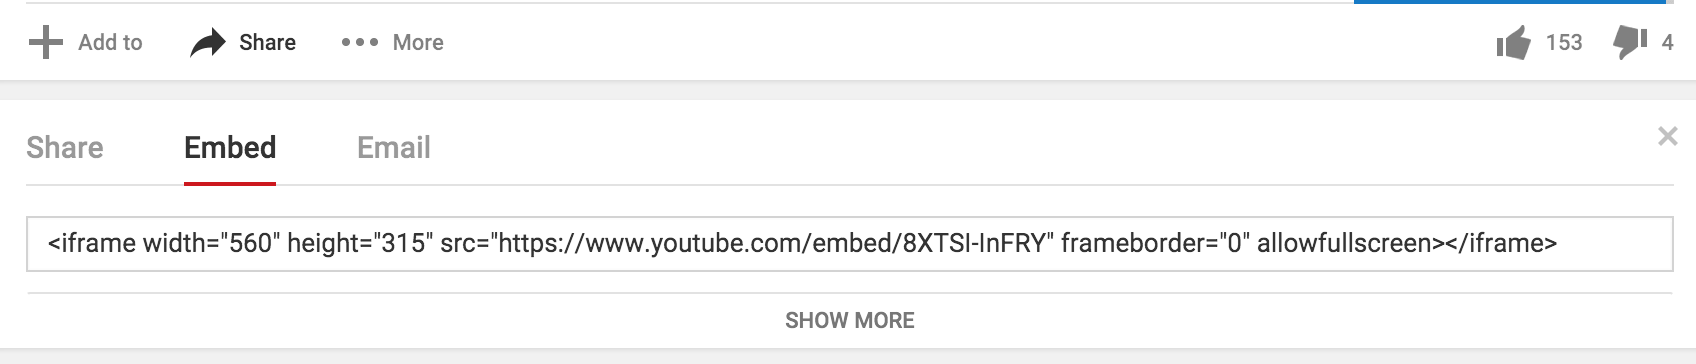 7.1 Youtube Embedded-min